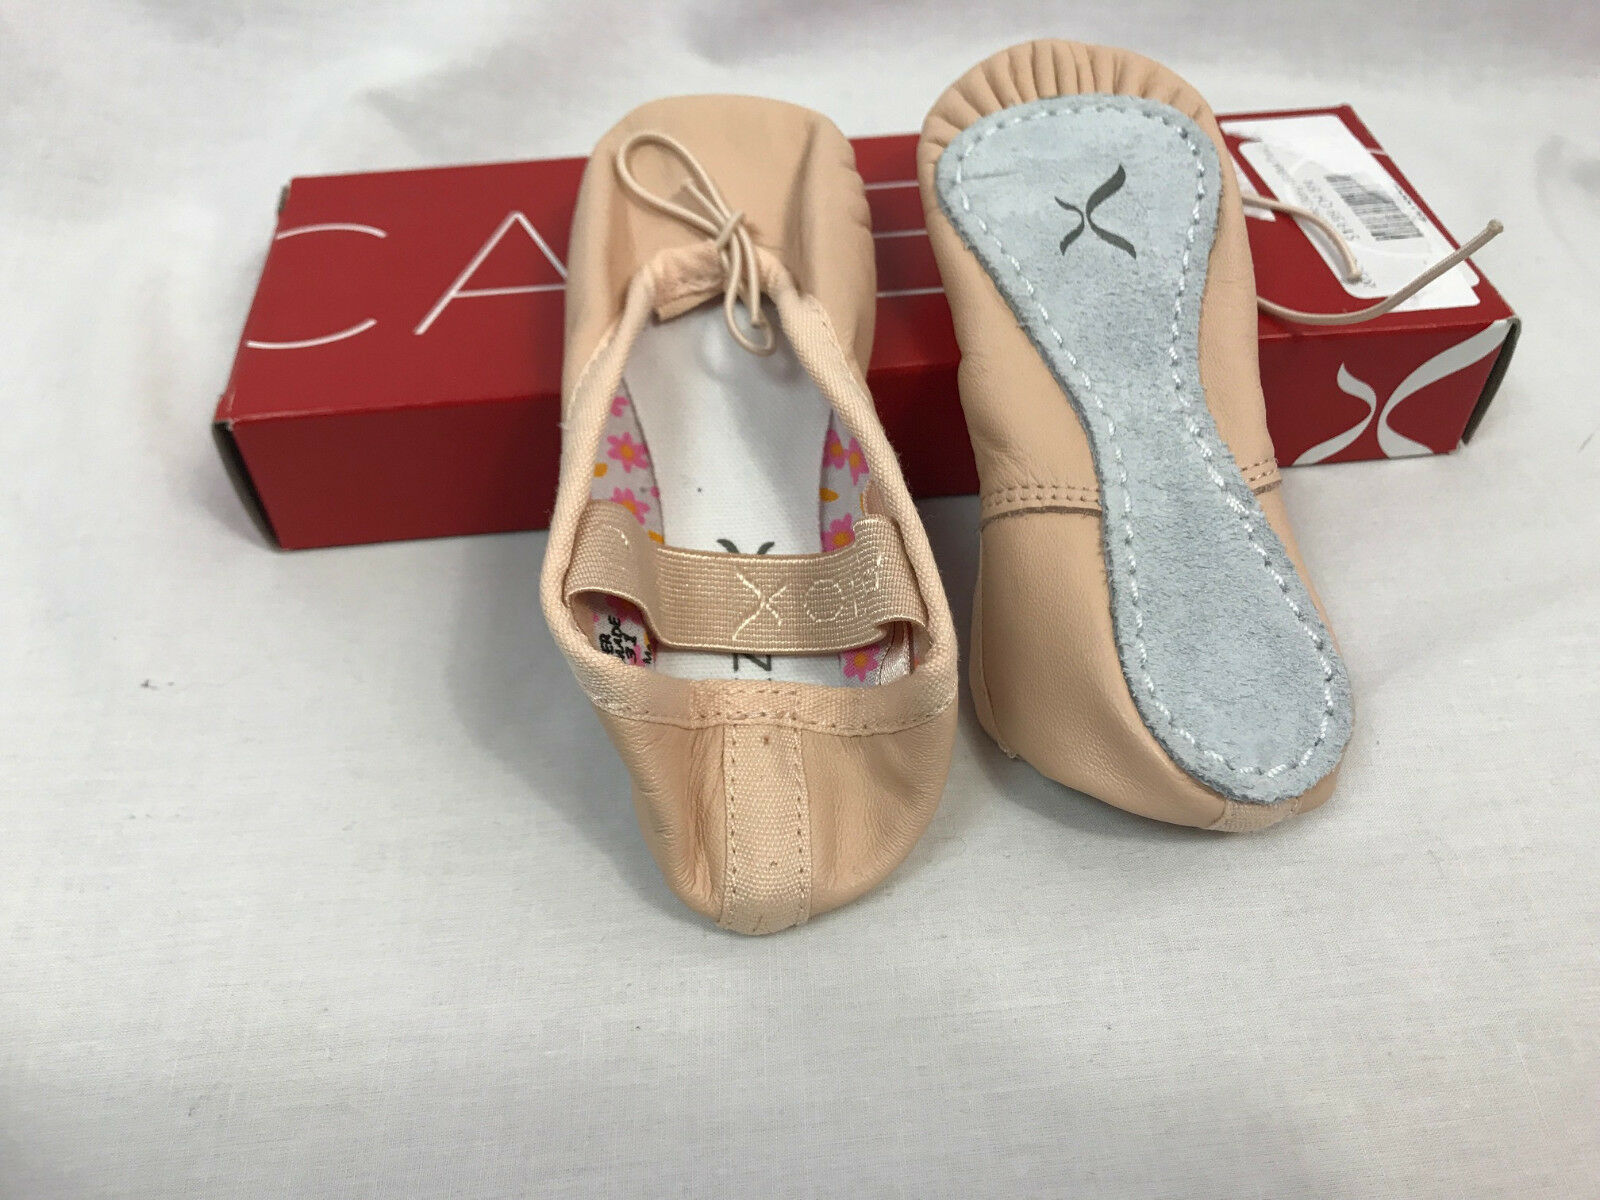 Capezio Adult Daisy Full Sole 205 Ballet Pink Shoes, Womens 4 W, New in Box